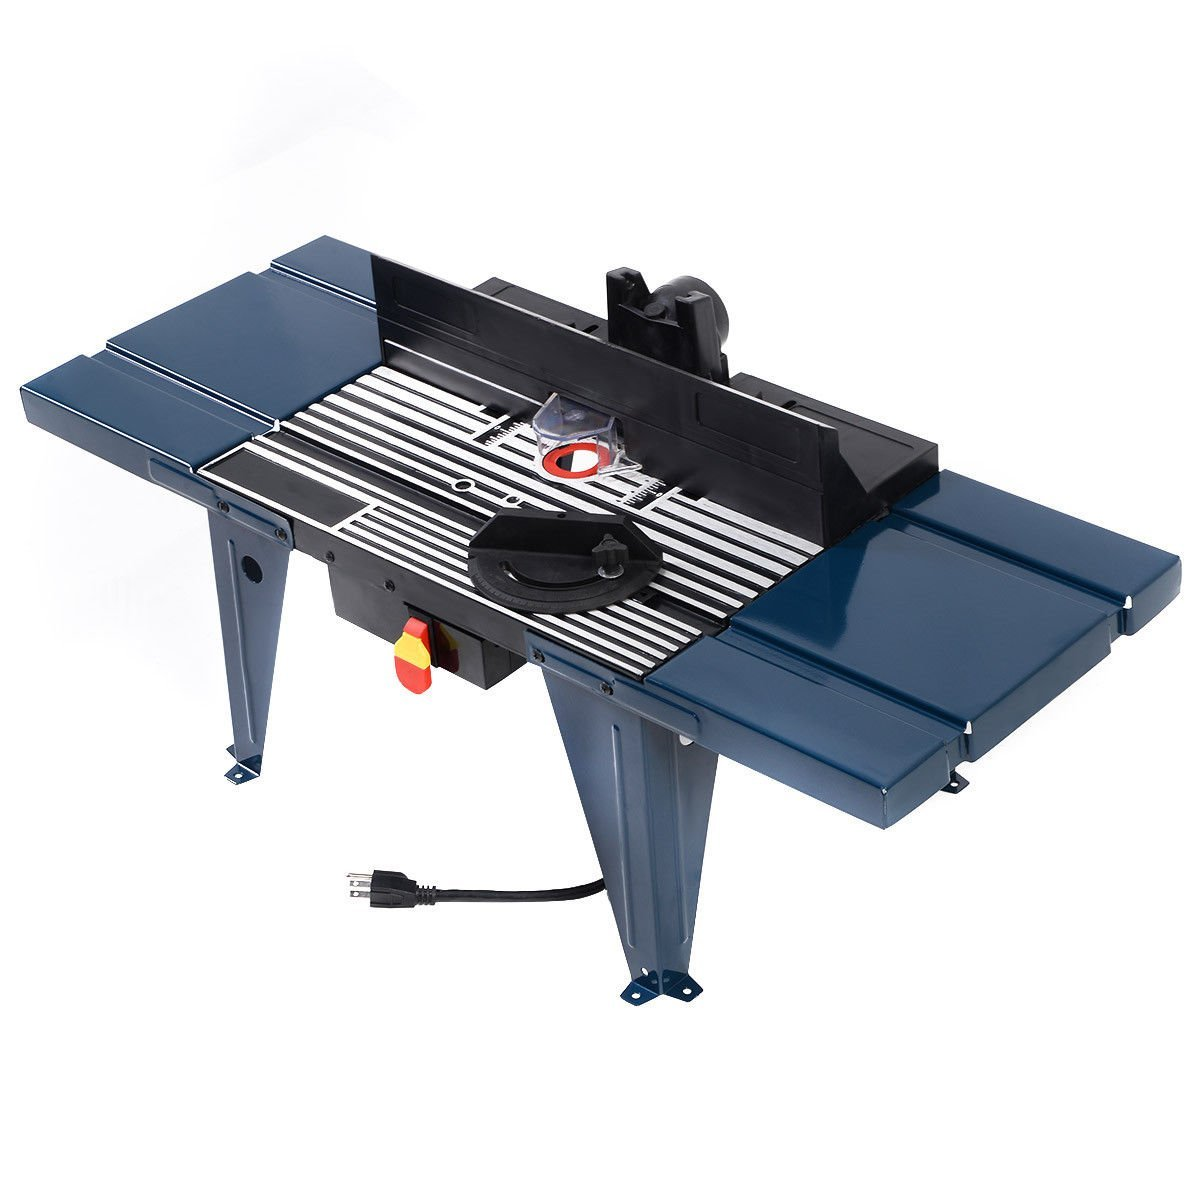 9TRADING Electric Aluminum Router Table Routing Wood Working Tool Benchtop New,Free Tax,Dellivered within 10 days